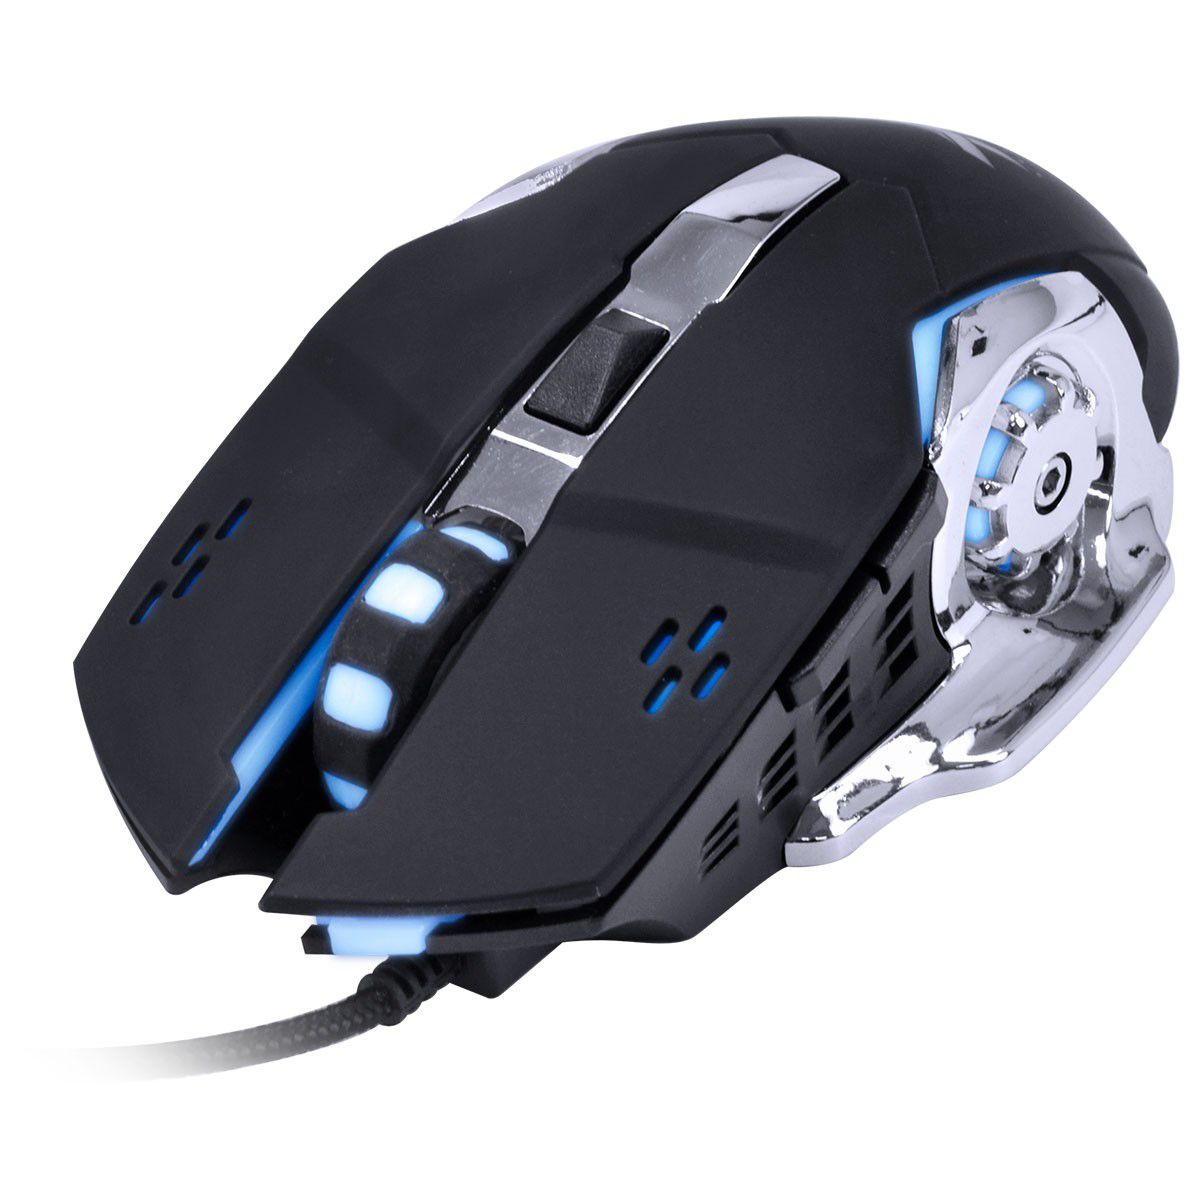 Combo Gamer Vx Gaming Grifo Teclado + Mouse 2400 Dpi Led Usb